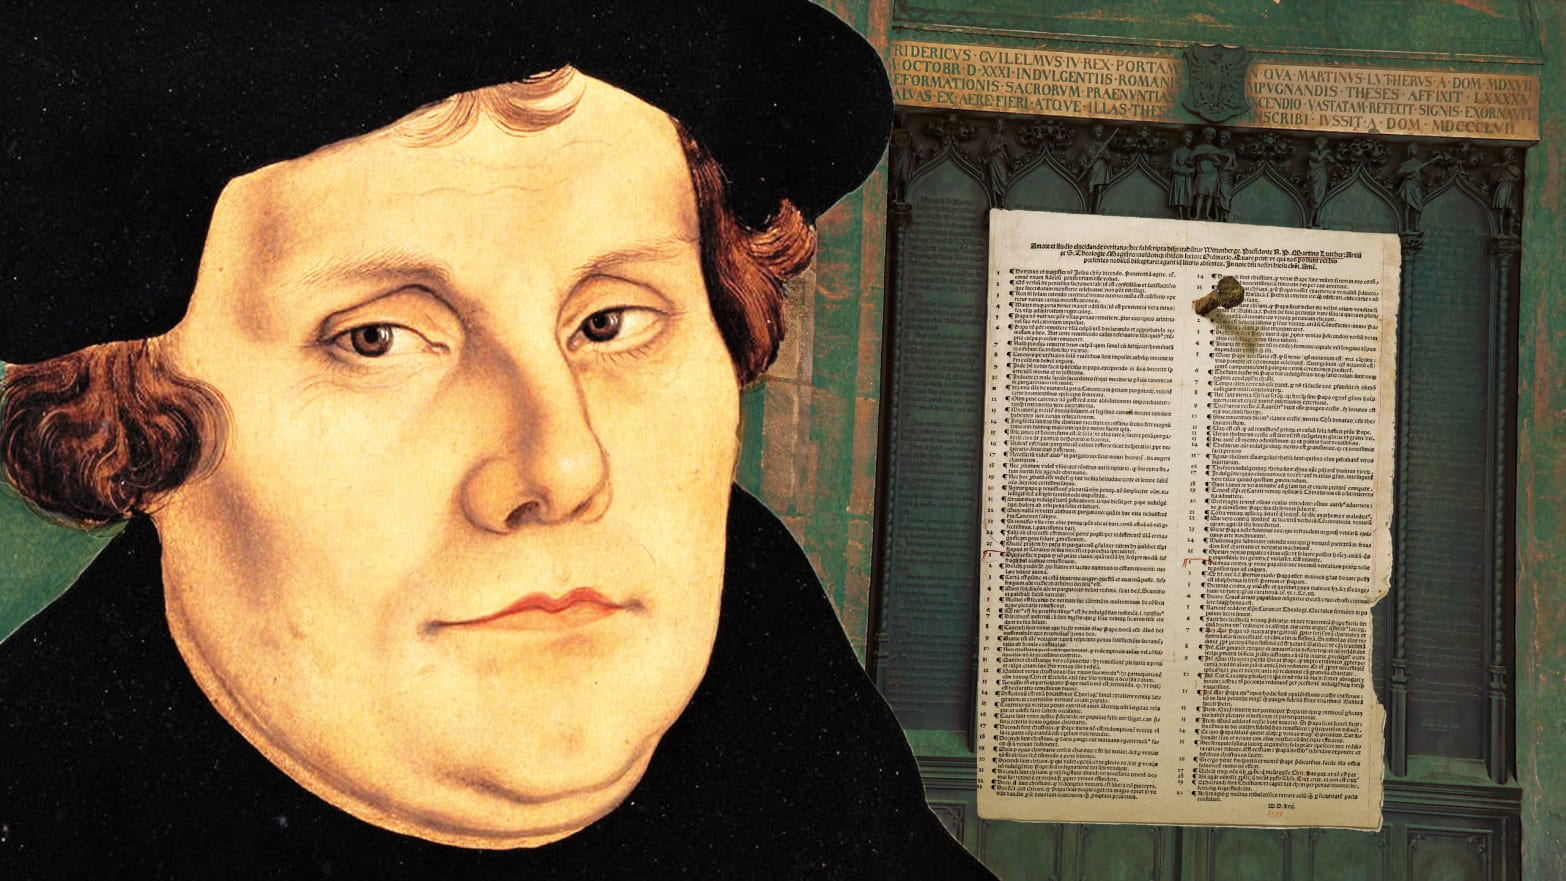 The Biggest Myth About the Protestant Reformation